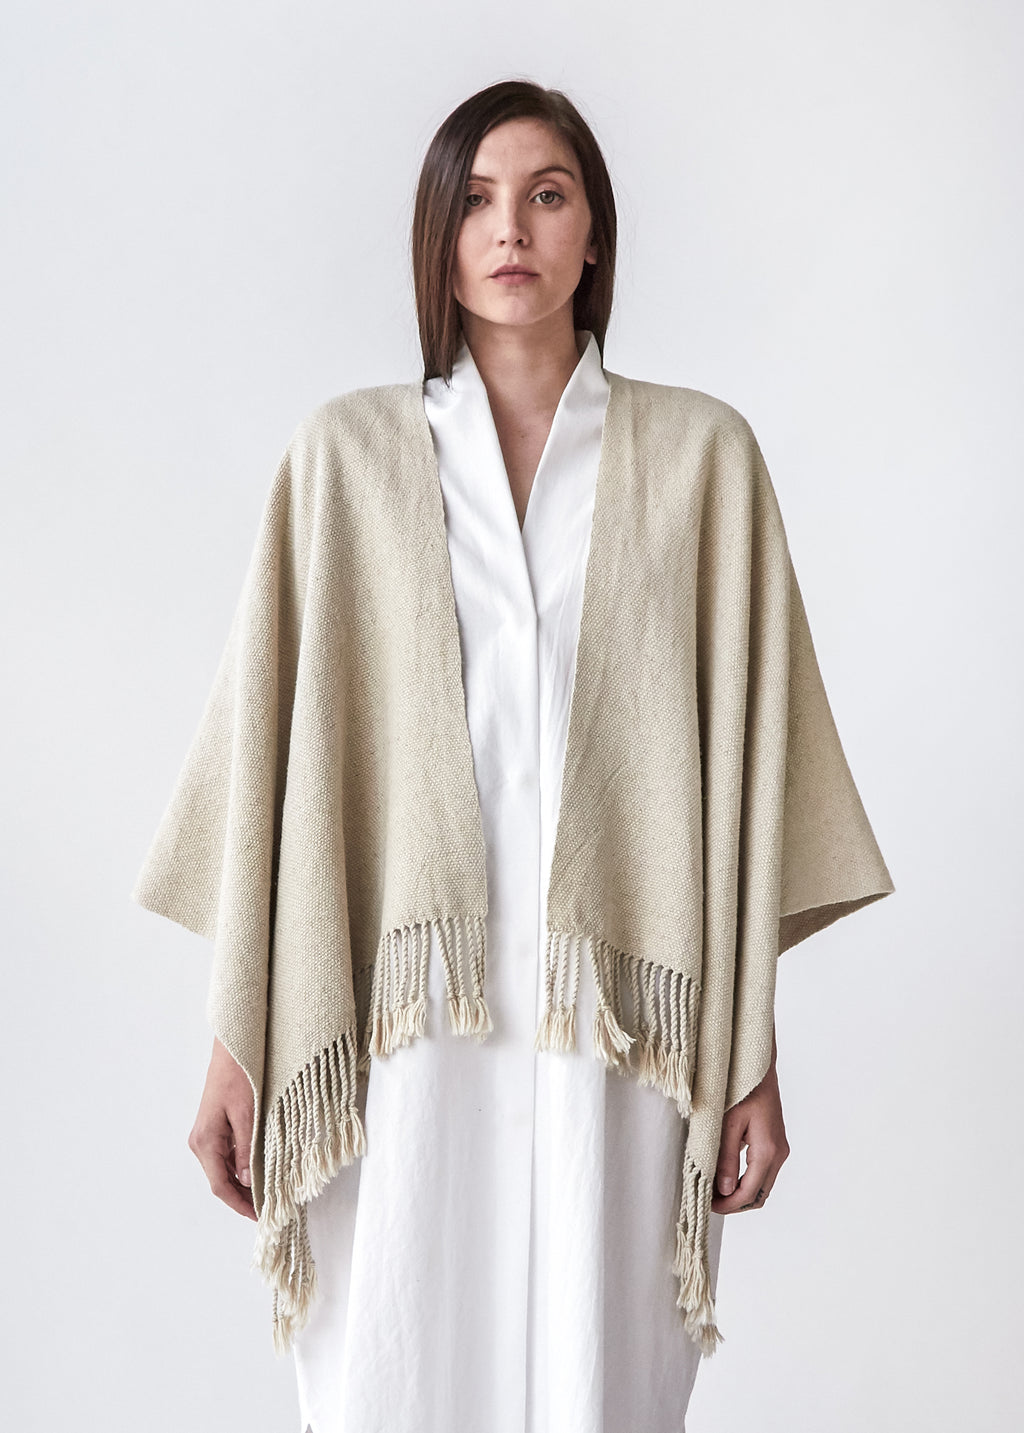 Handwoven Summer Serape in Natural - SOLD OUT